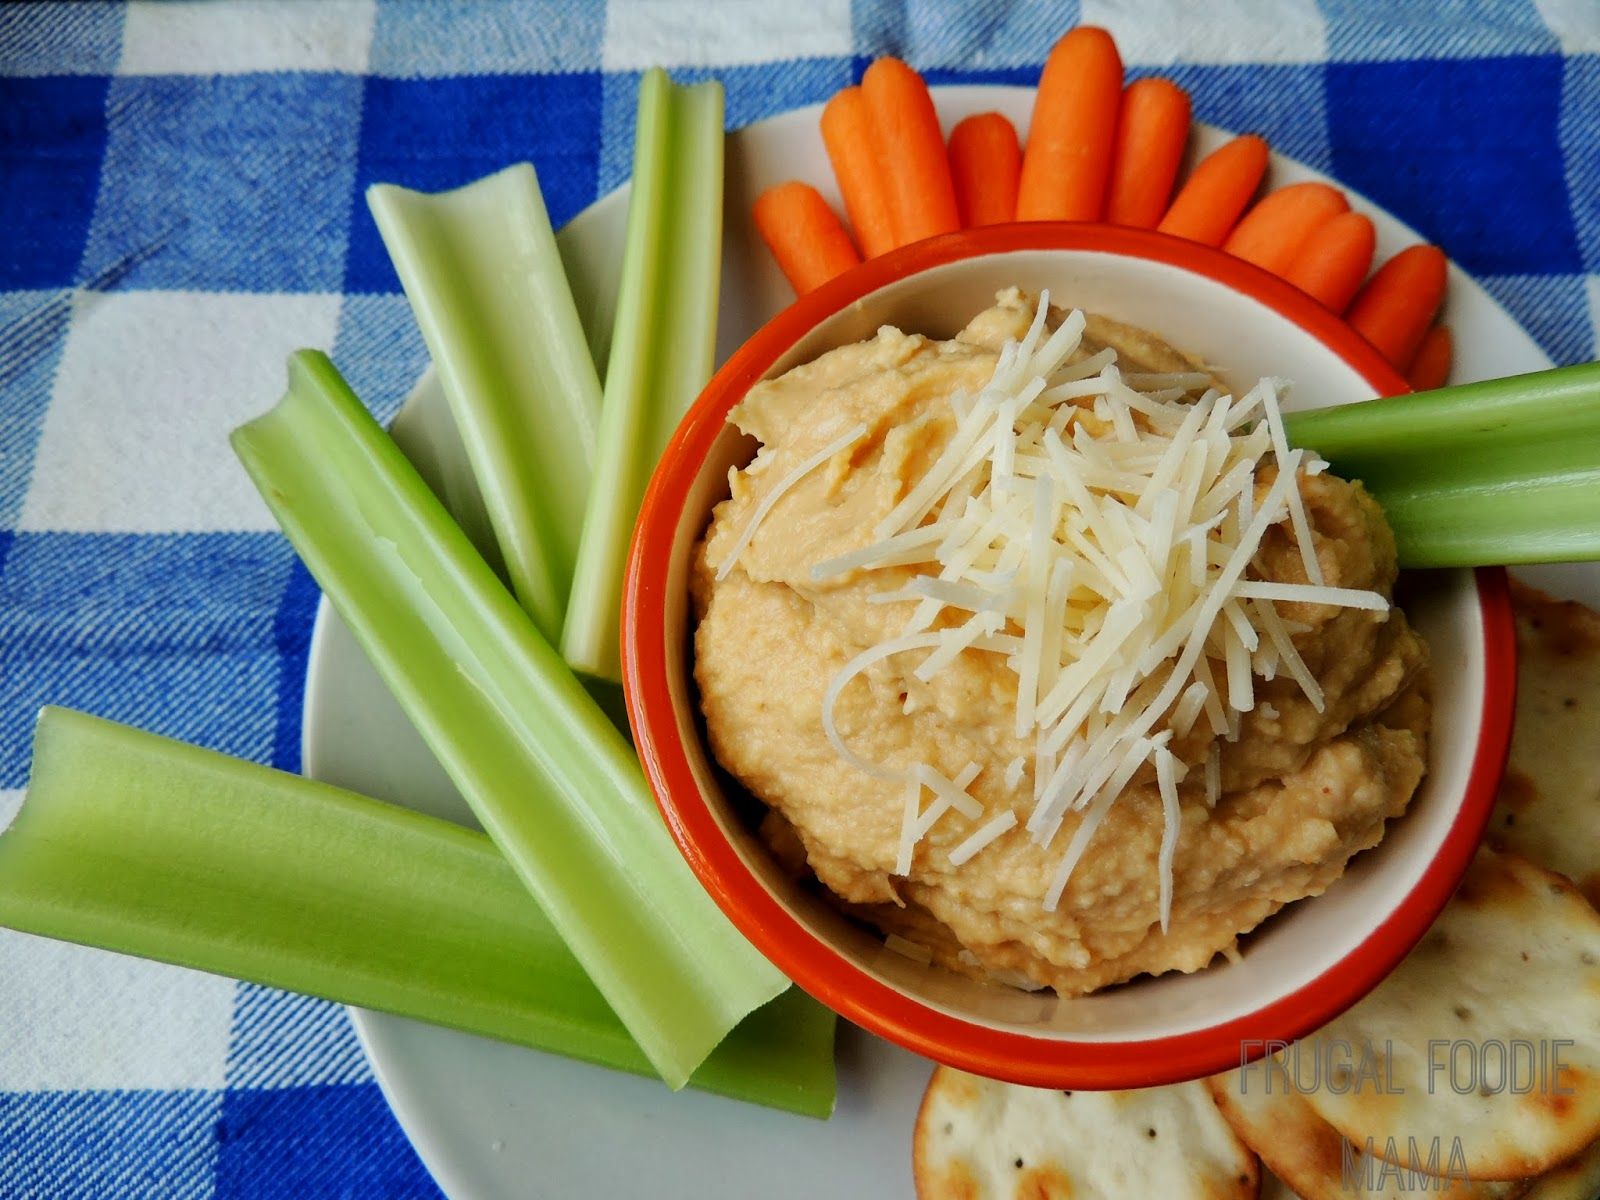 This quick & healthy Buffalo Parmesan Hummus has all the tastiness of a favorite game day flavor minus the guilt.